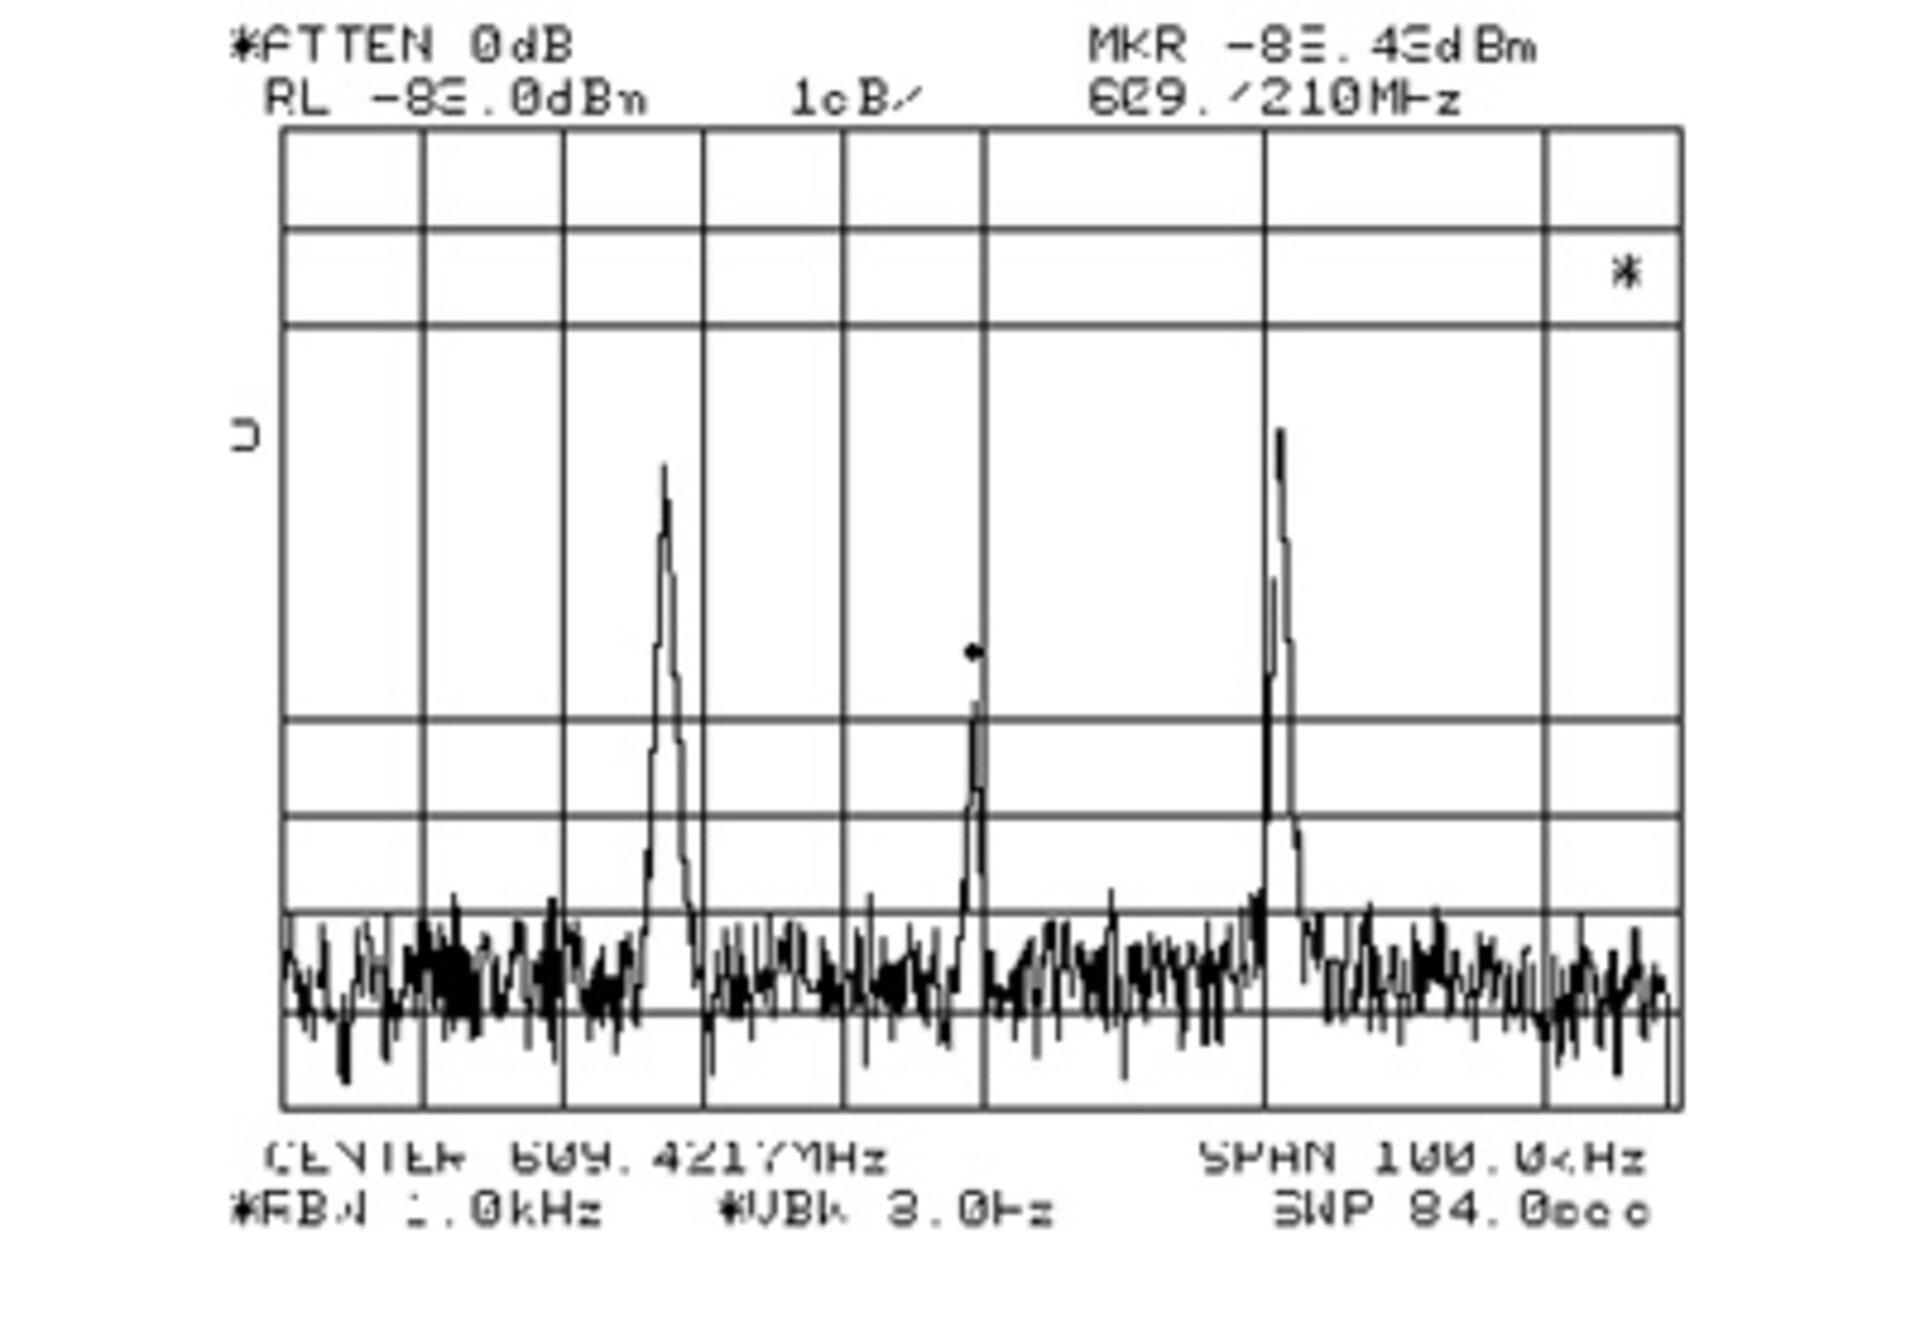 Spectrum analyser display indicating first signals received from Stardust at DSA 1